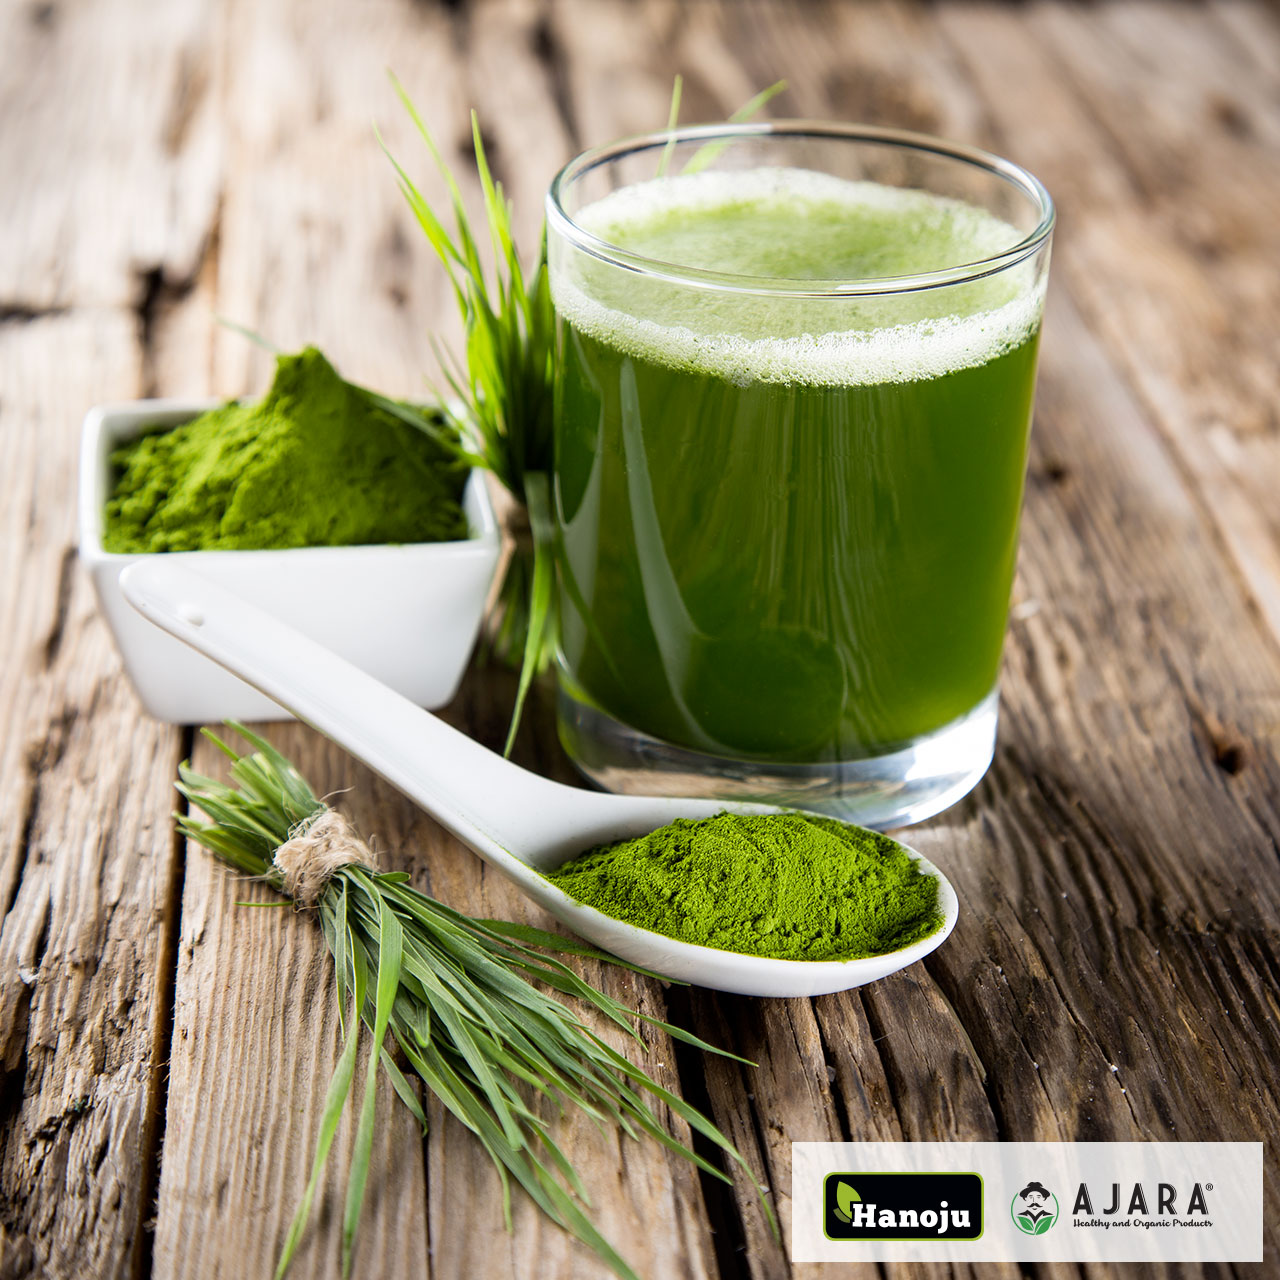 Wheat grass benefits